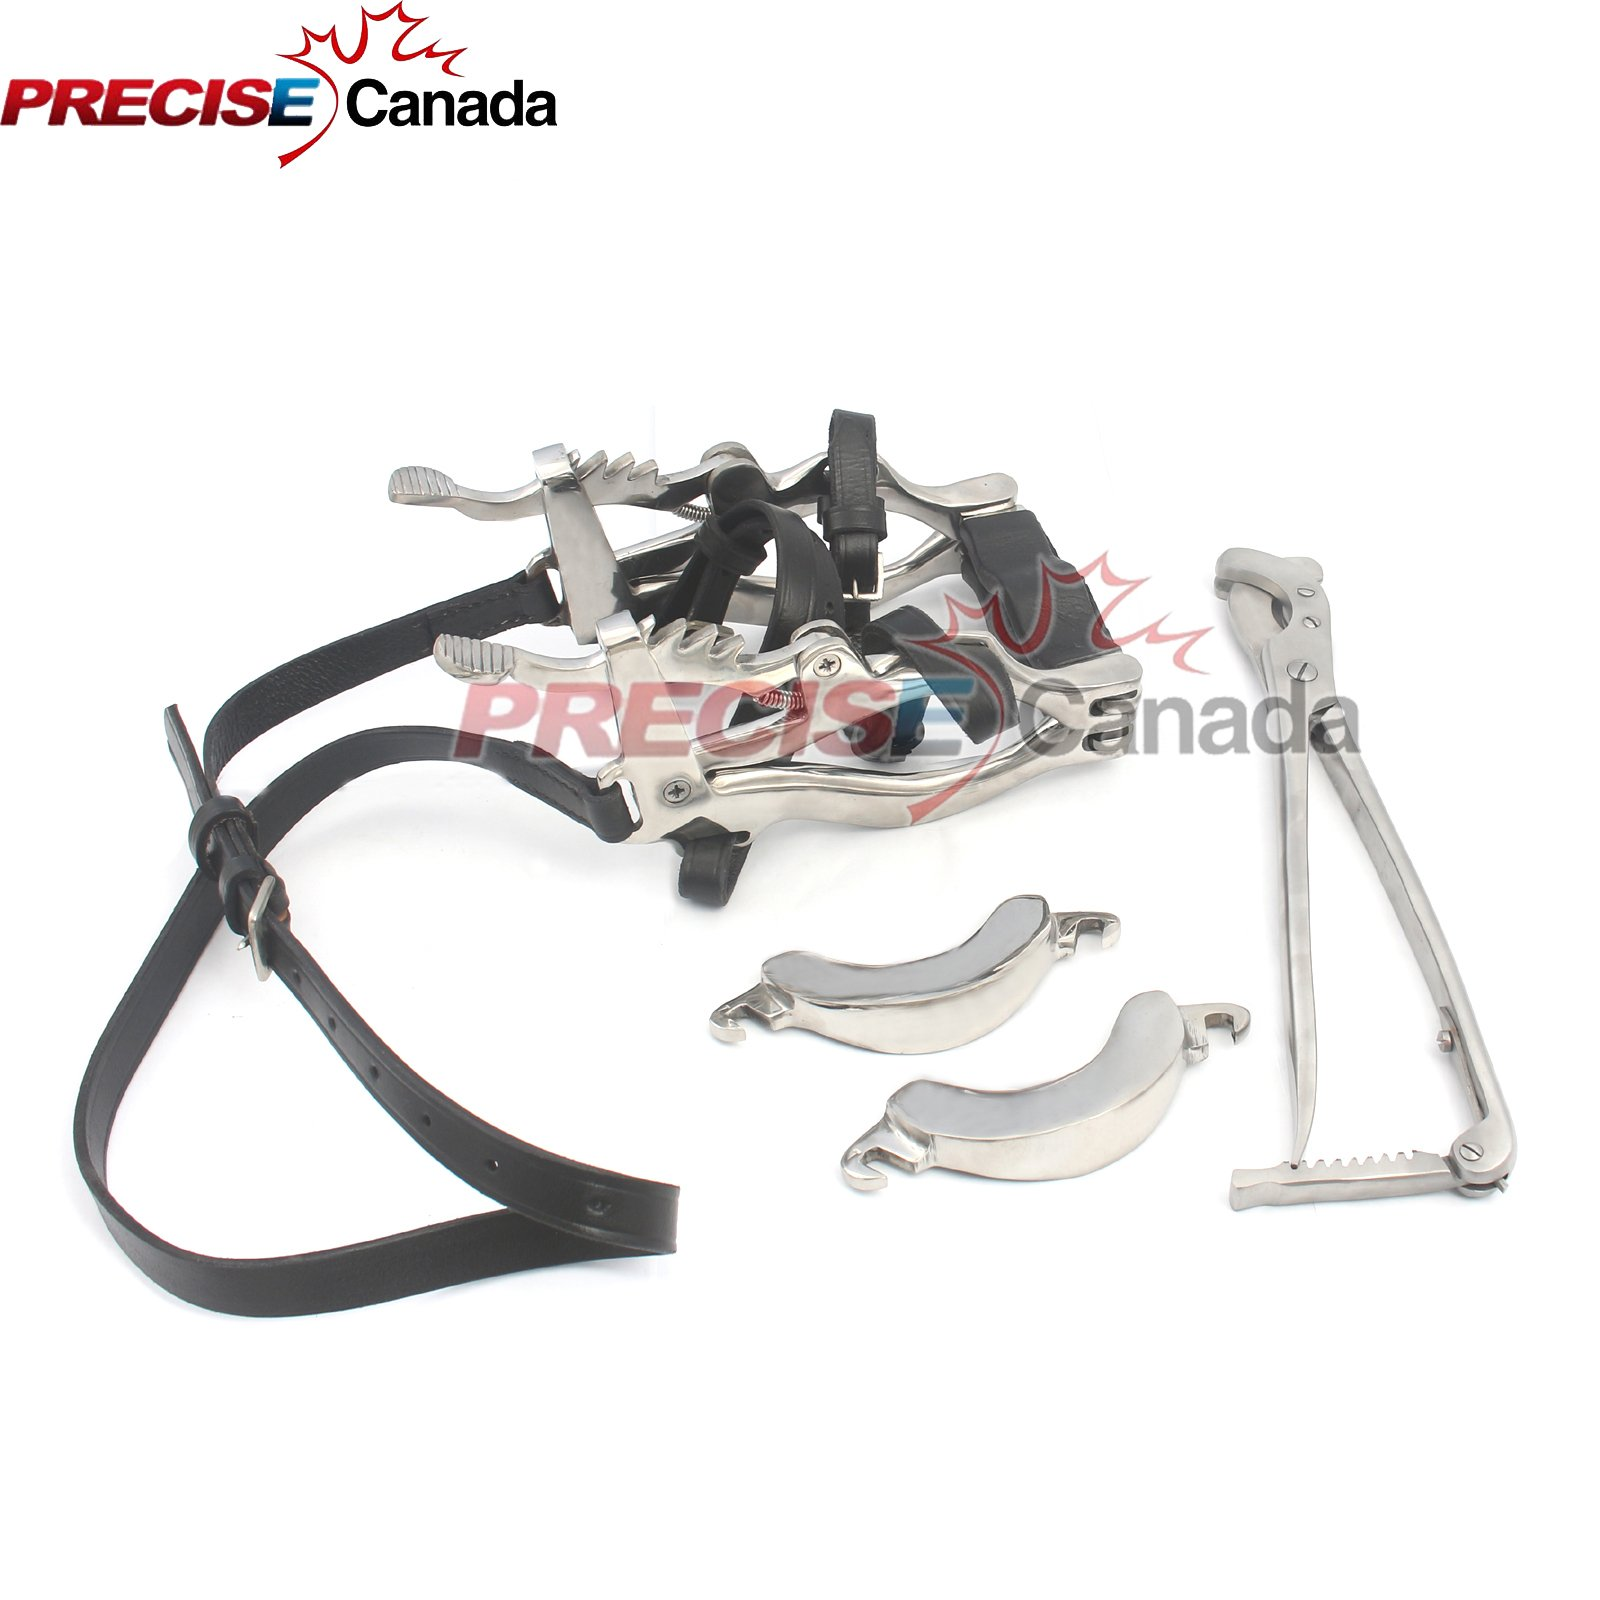 PRECISE CANADA: HORSE MOUTH SPECULUM STAINLESS STEEL SAND EMASCULATOR